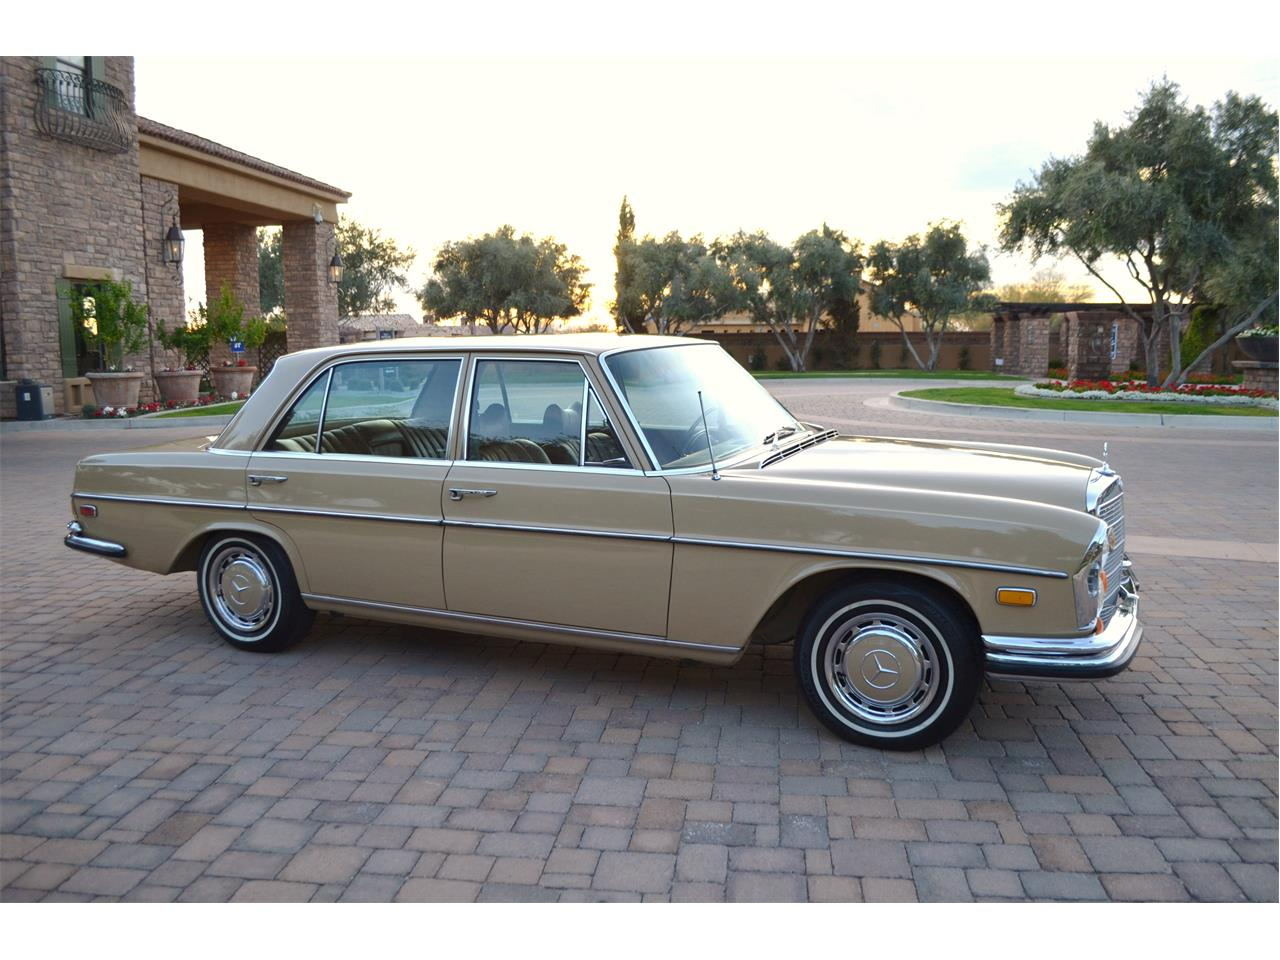 Large Picture of Classic '73 Mercedes-Benz 280SEL located in Chandler Arizona - $23,995.00 - PNR0